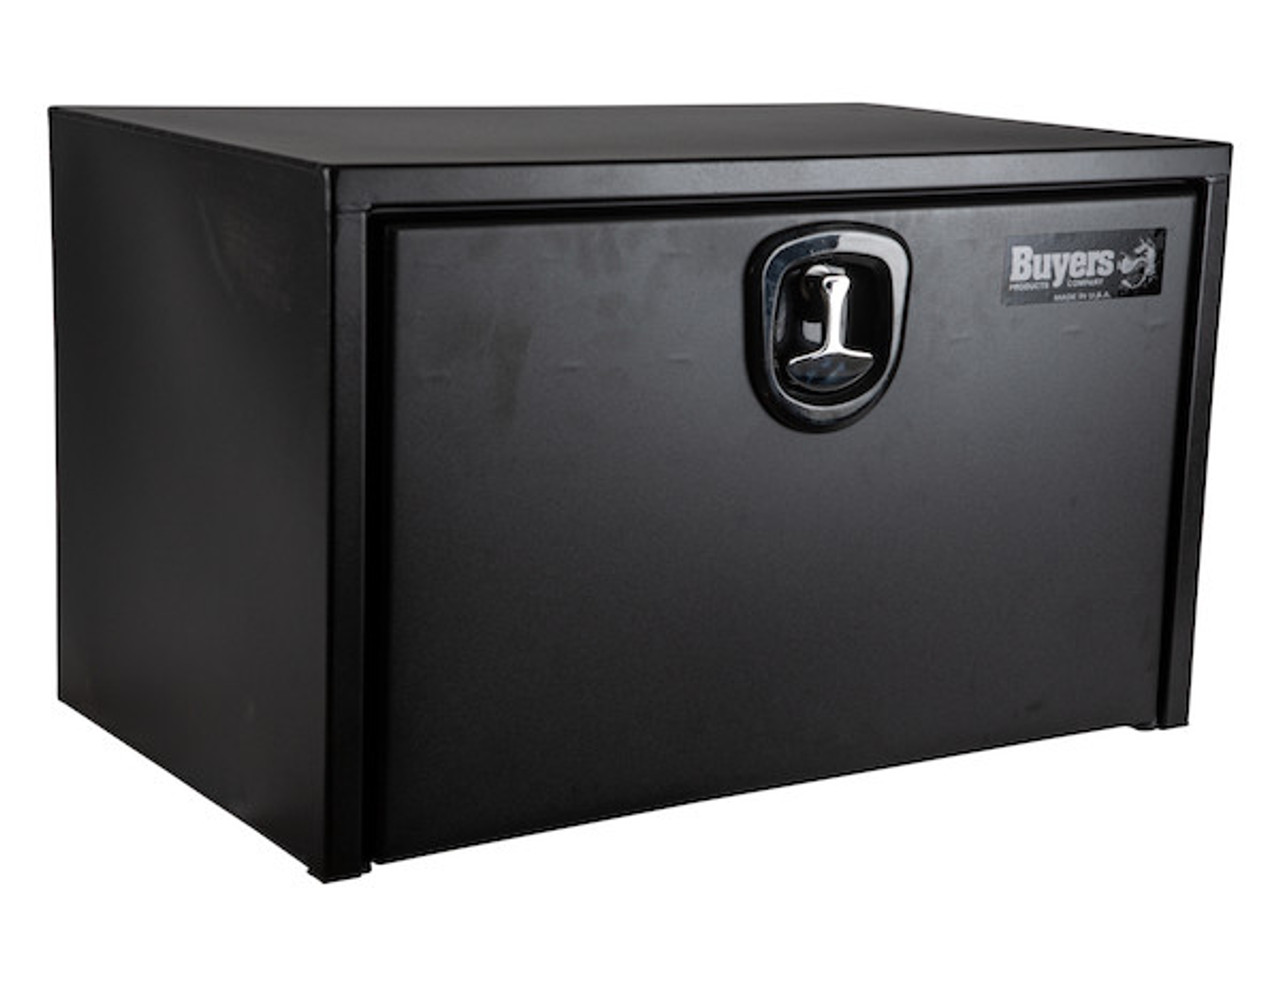 """1732503 BUYERS PRODUCTS TEXTURED MATTE BLACK STEEL UNDERBODY TRUCK TOOLBOX WITH 3-POINT LATCH 18""""Hx18""""Dx30""""W Picture # 1"""